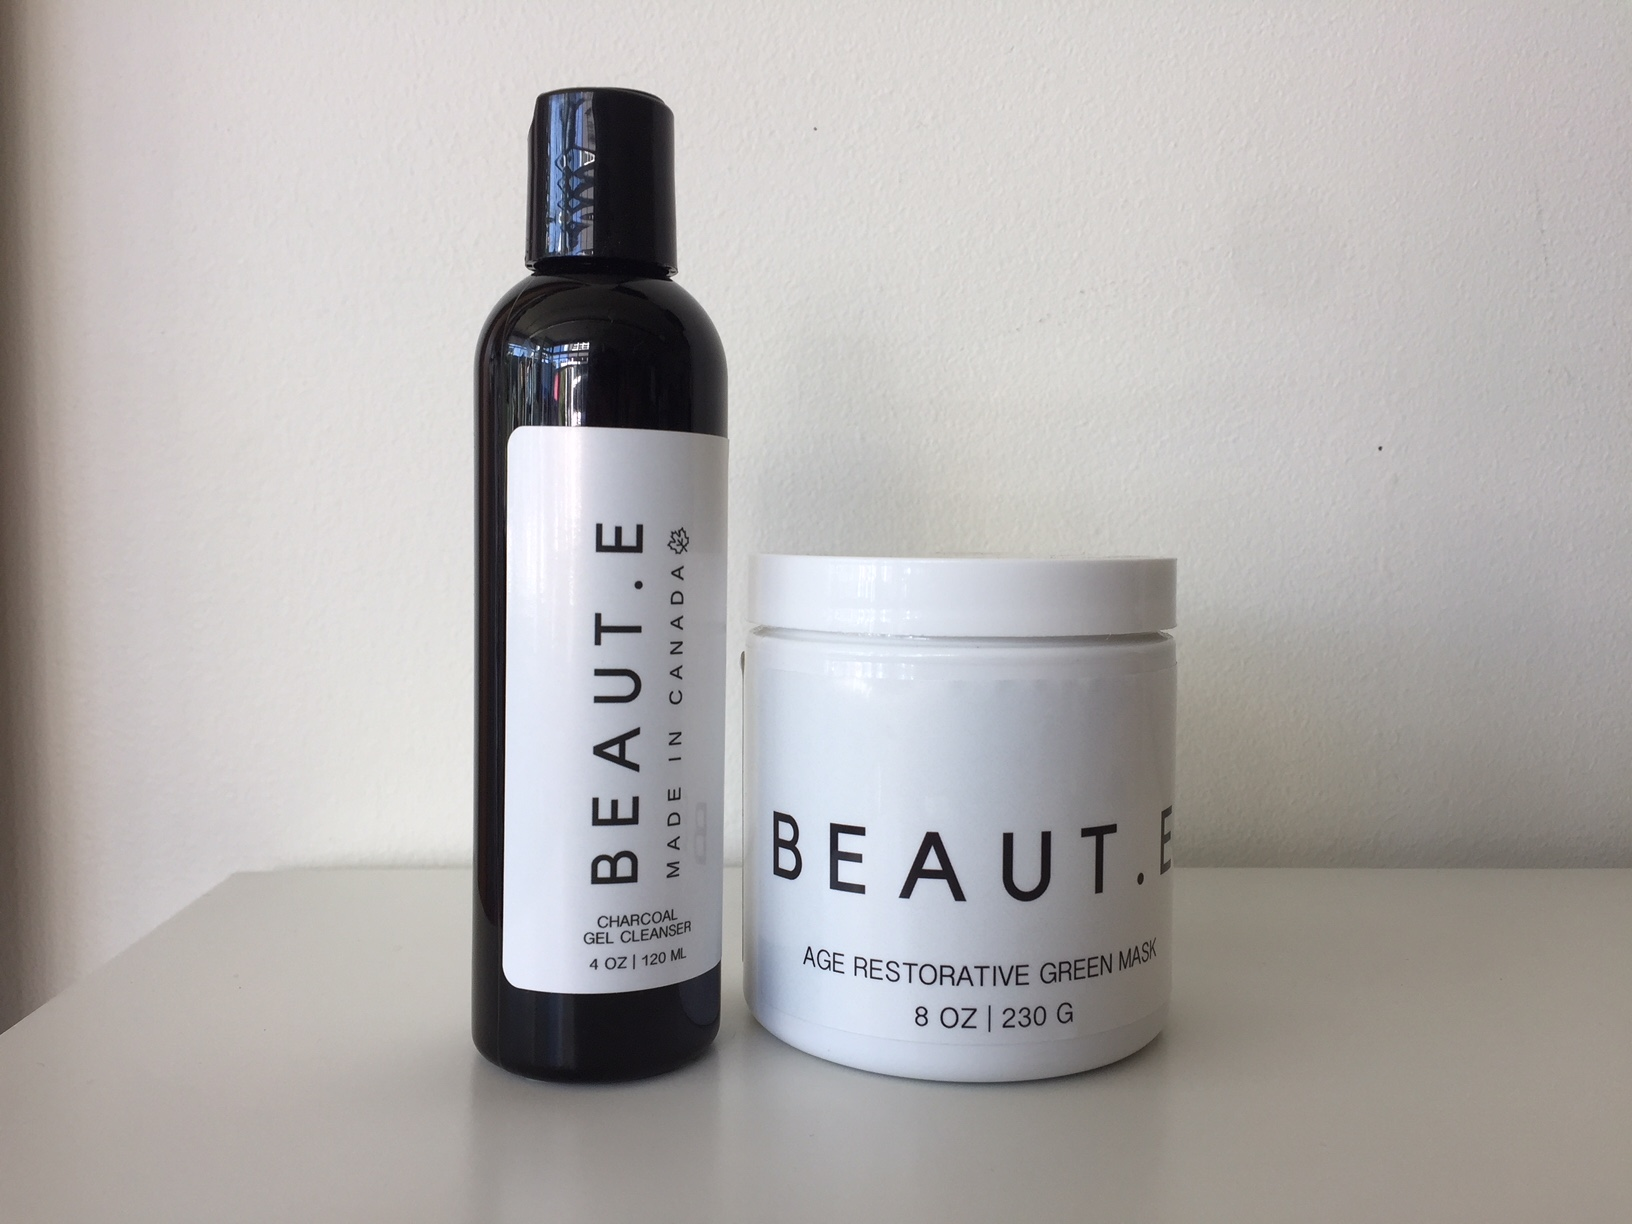 BEAUT.E's Charcoal Gel Cleanser and Age Restorative Green Mask